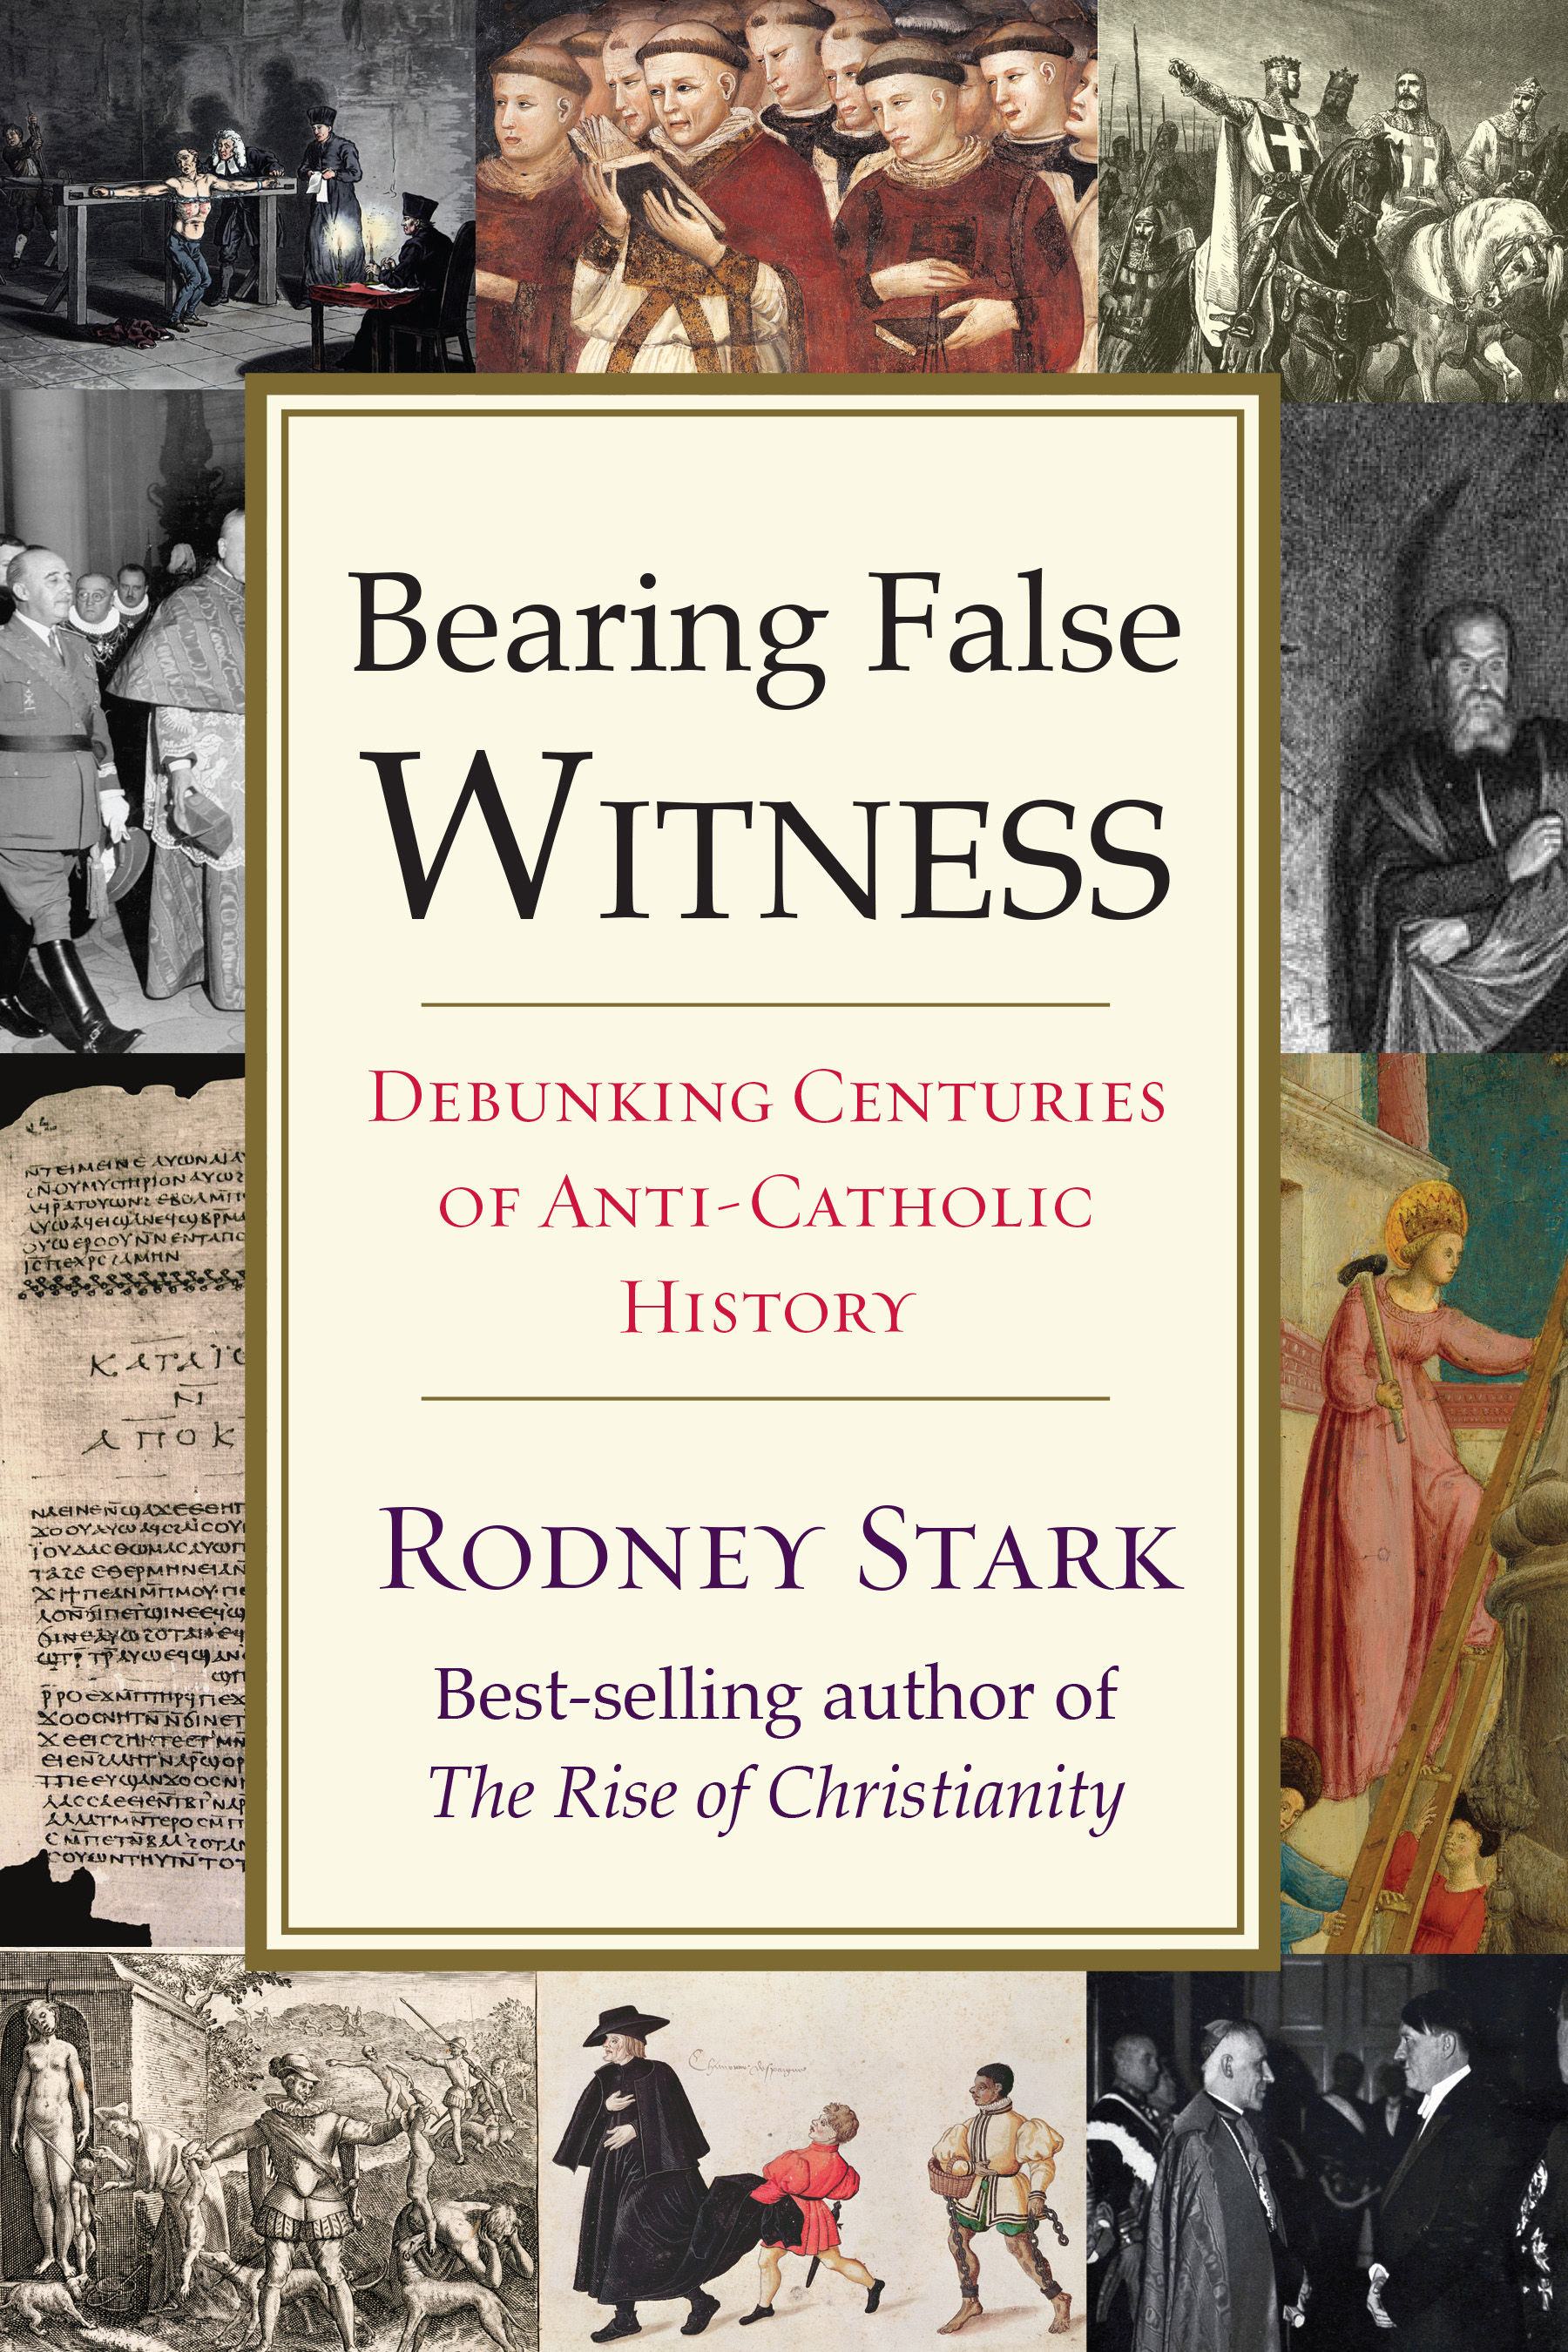 rise of christianity by rodney stark Reconstructing the rise of christianity: the role of women 23 1 by eusebius are unknown (stark 1984, 1994 stark and bainbridge 1985) clearly, then, the rise of christianity could easily have been accomplished in ac.